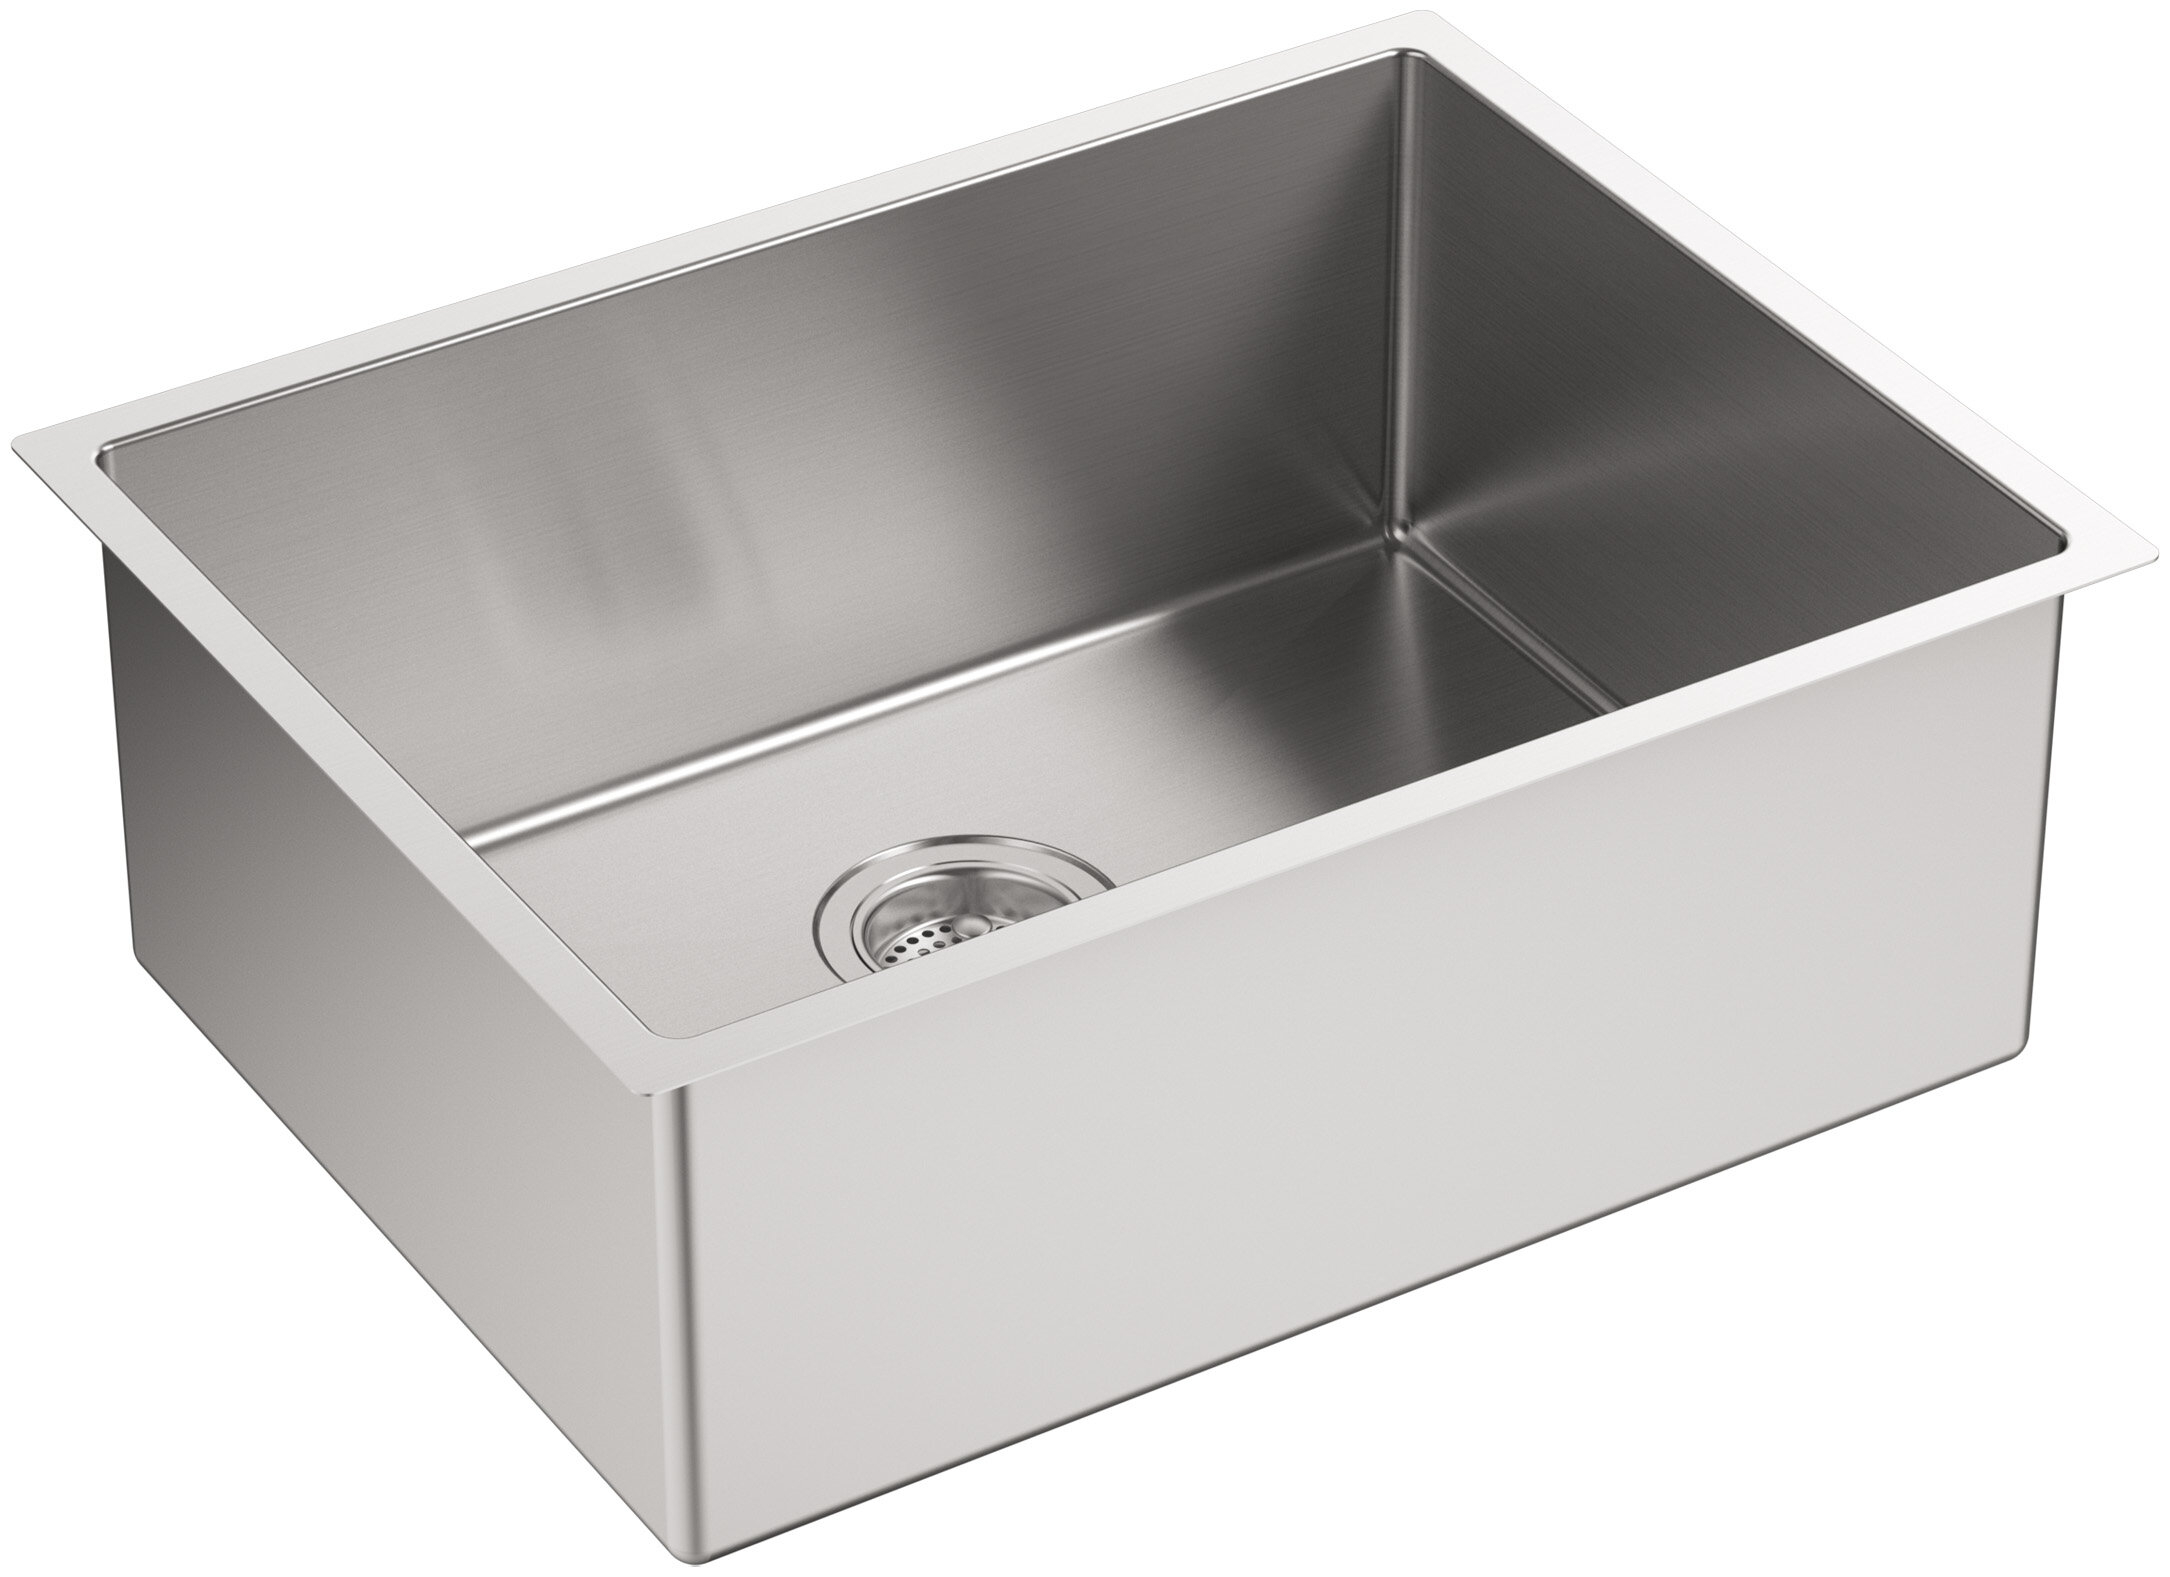 Kohler Kitchen Sinks Free Shipping Over 35 Wayfair